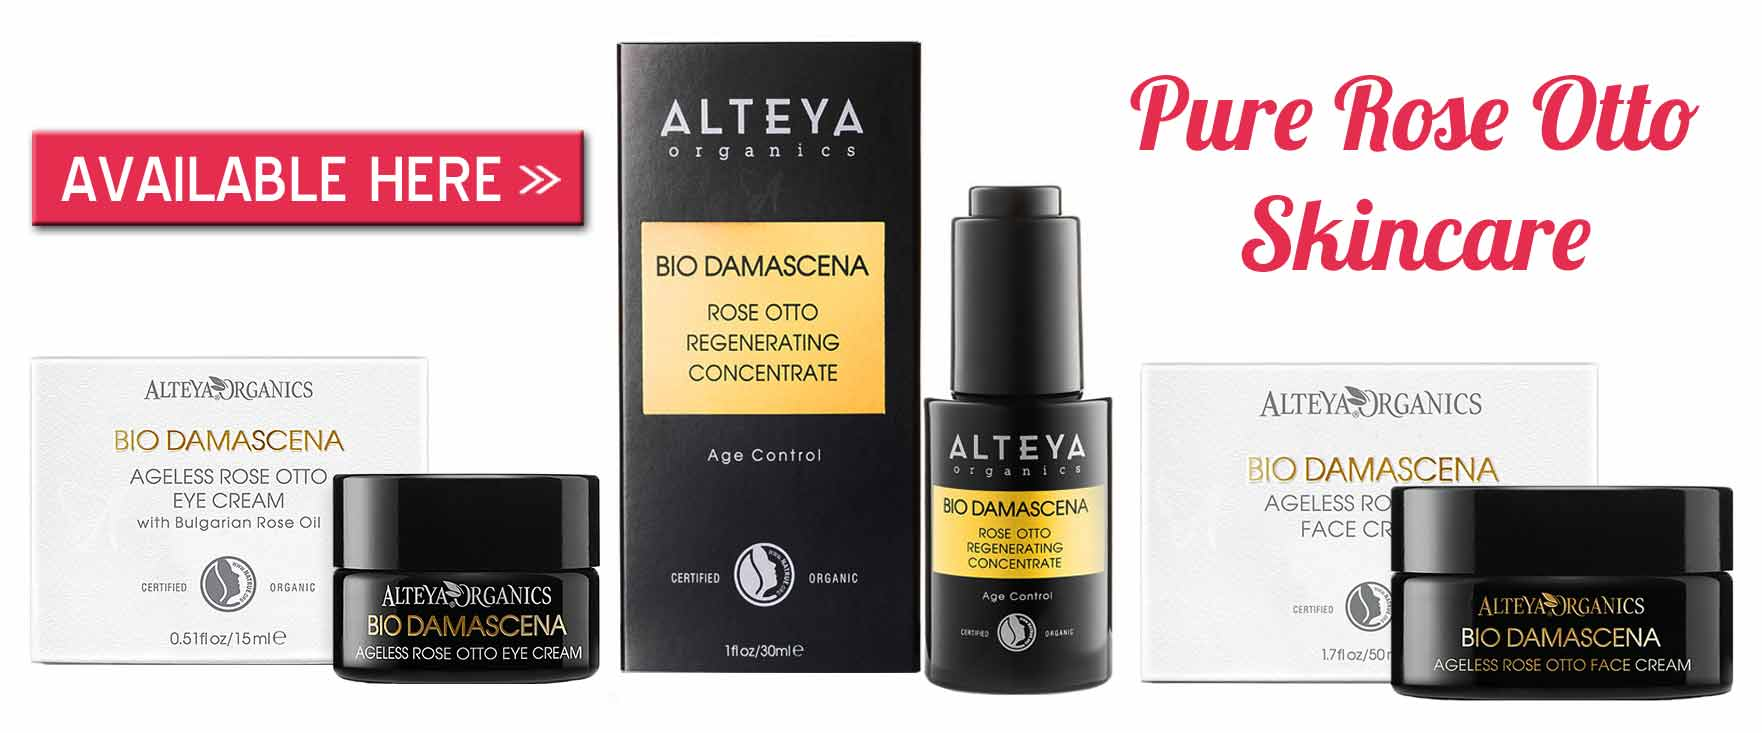 Alteya Organics and Bulgarian Rose Oil